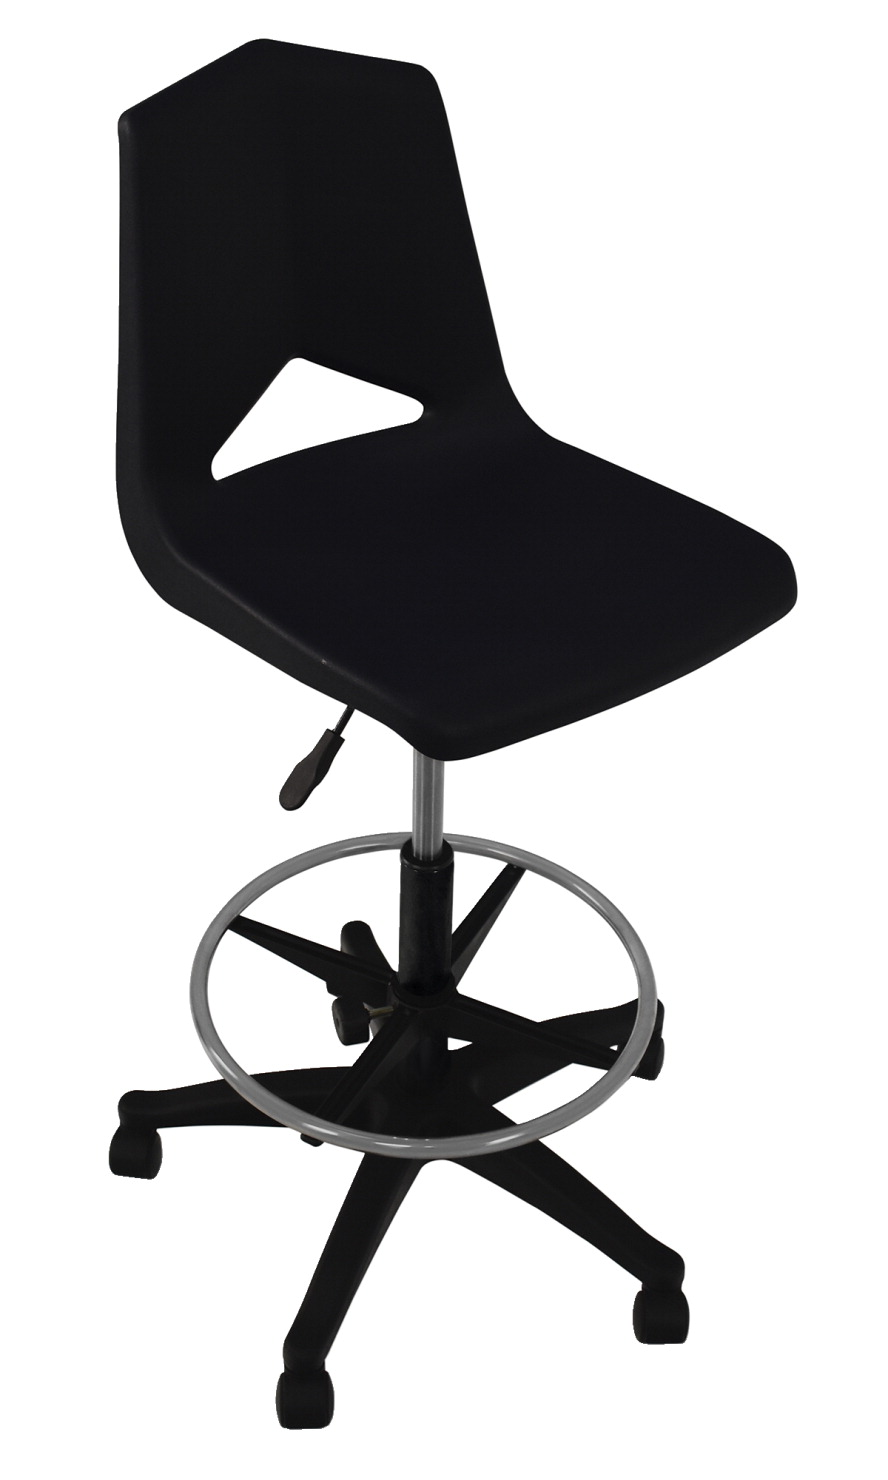 Royal Seating Pneumatic Lift Chair with Adjustable Foot Ring, A Shell, Various Options